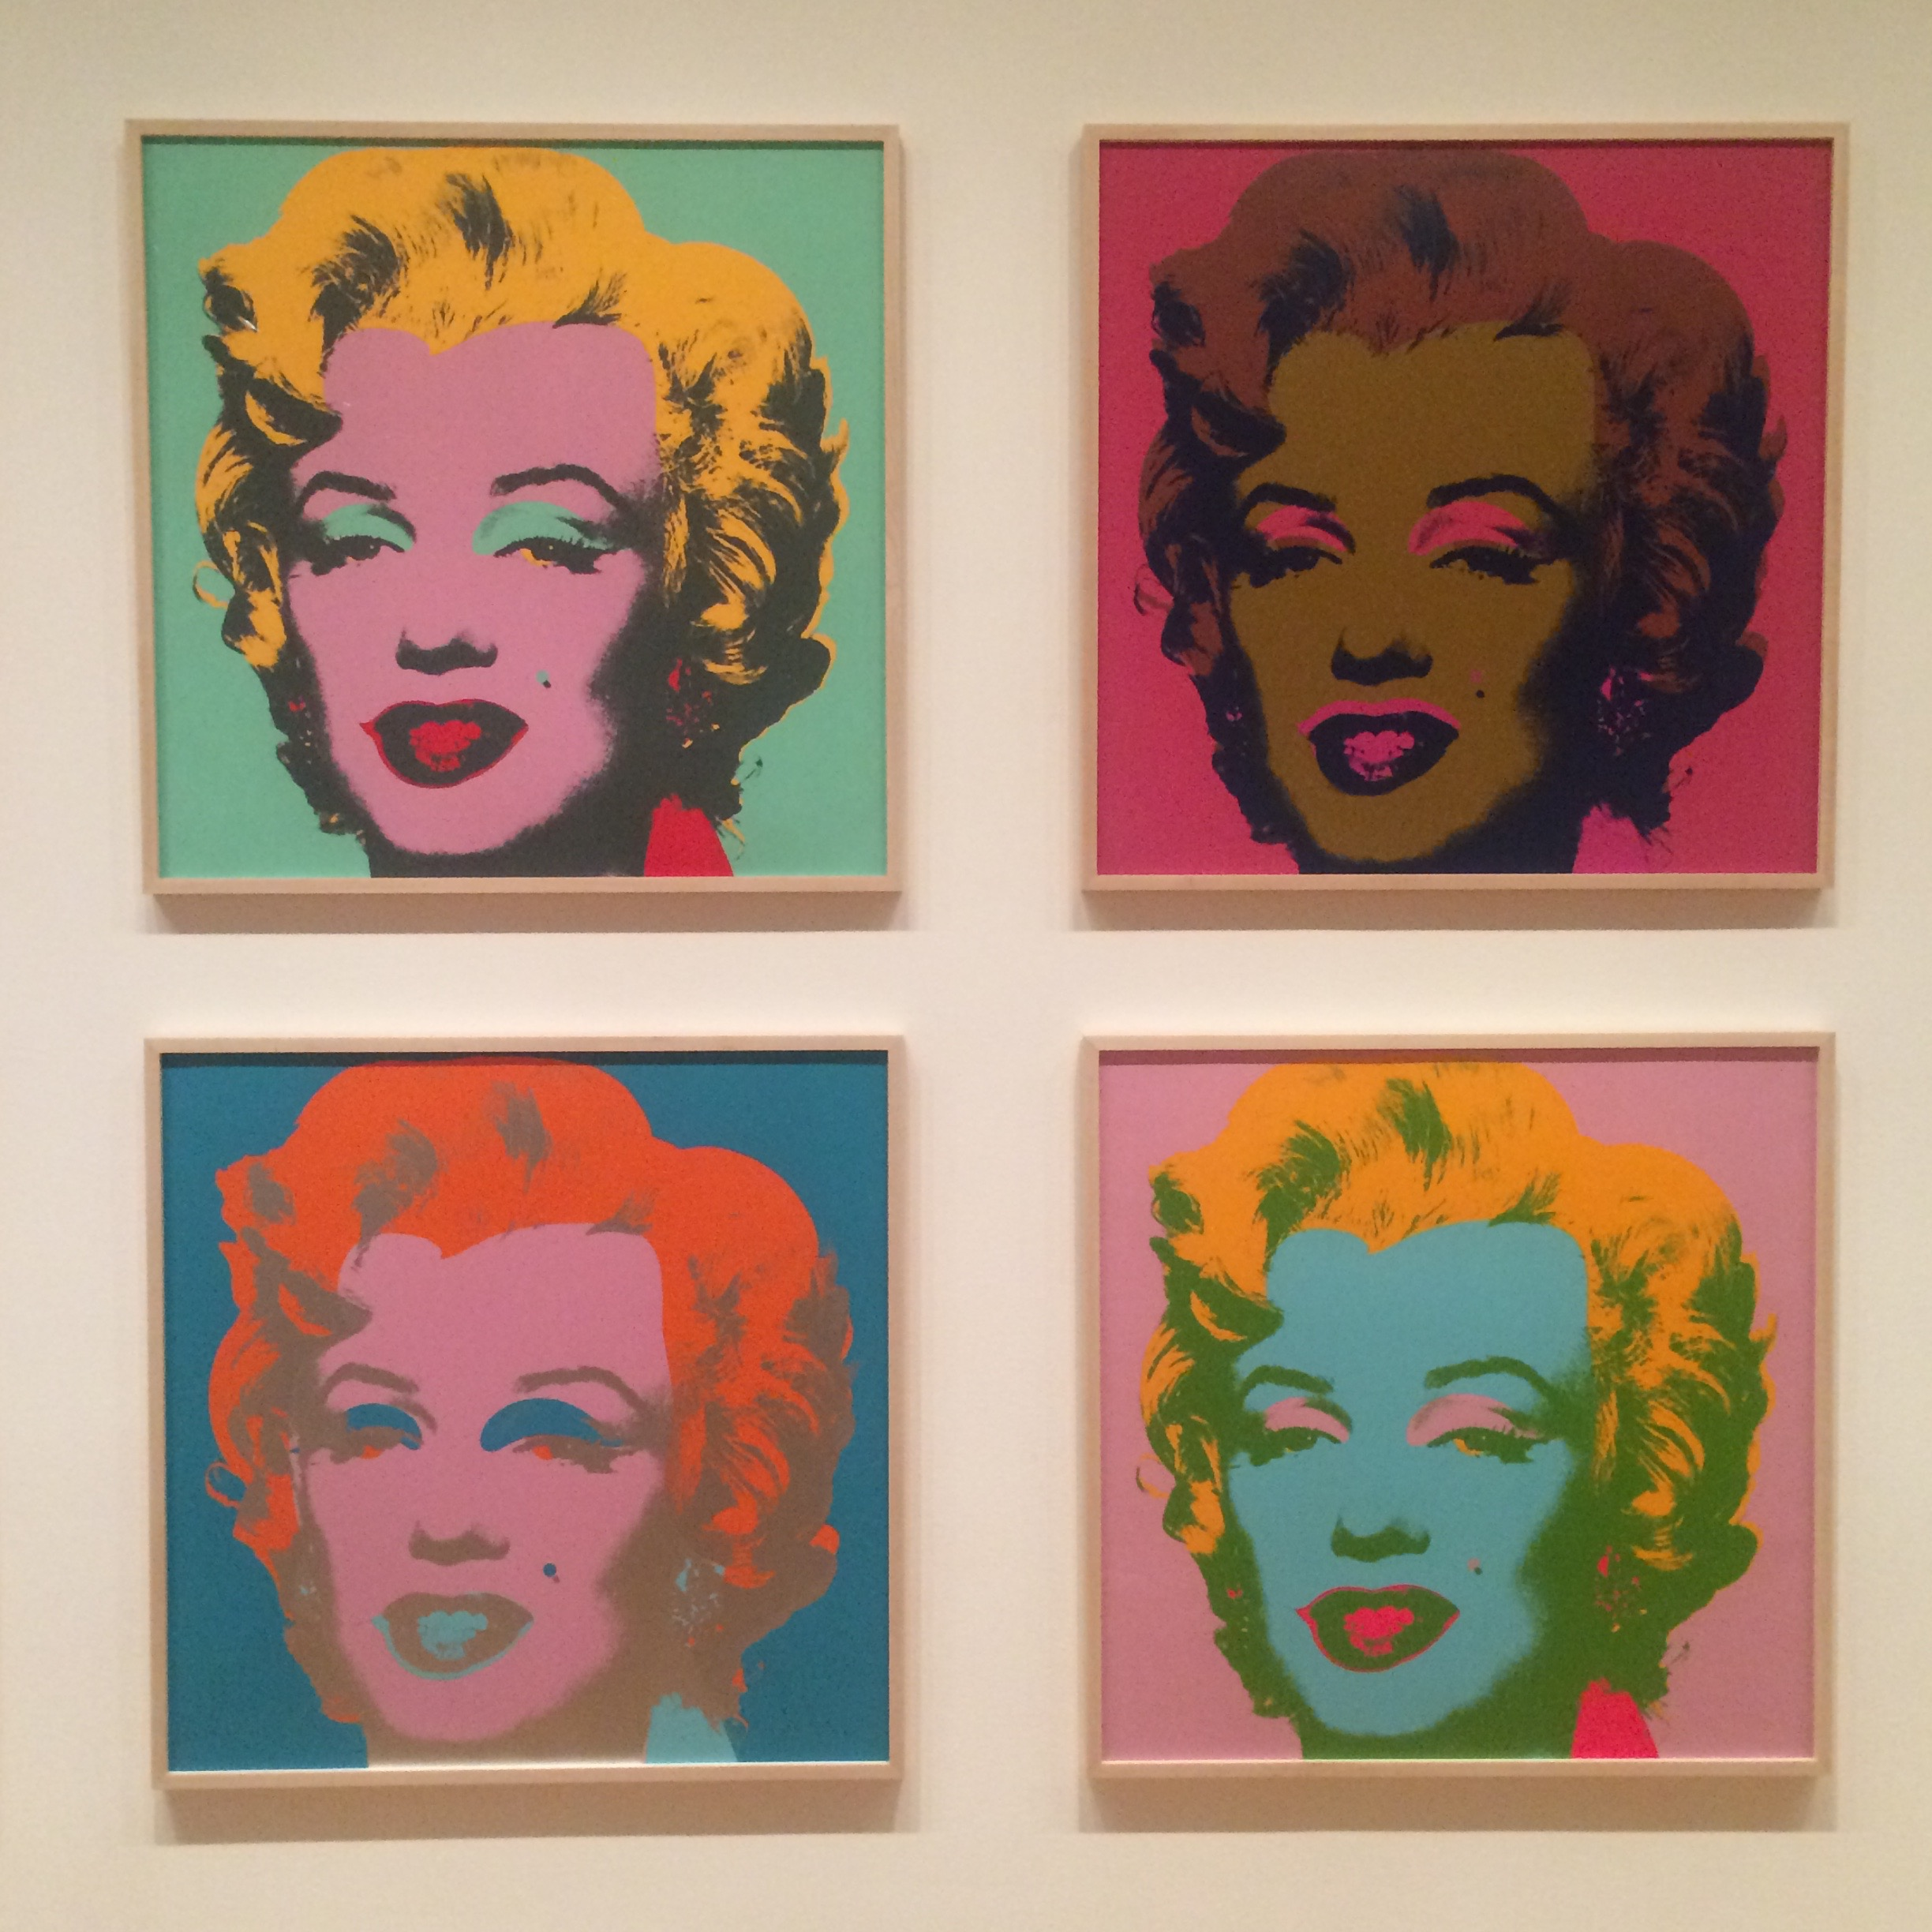 Marilyn Pop Art Andy Warhol Popping In At The Moma Andy Warhol And Other Thoughts